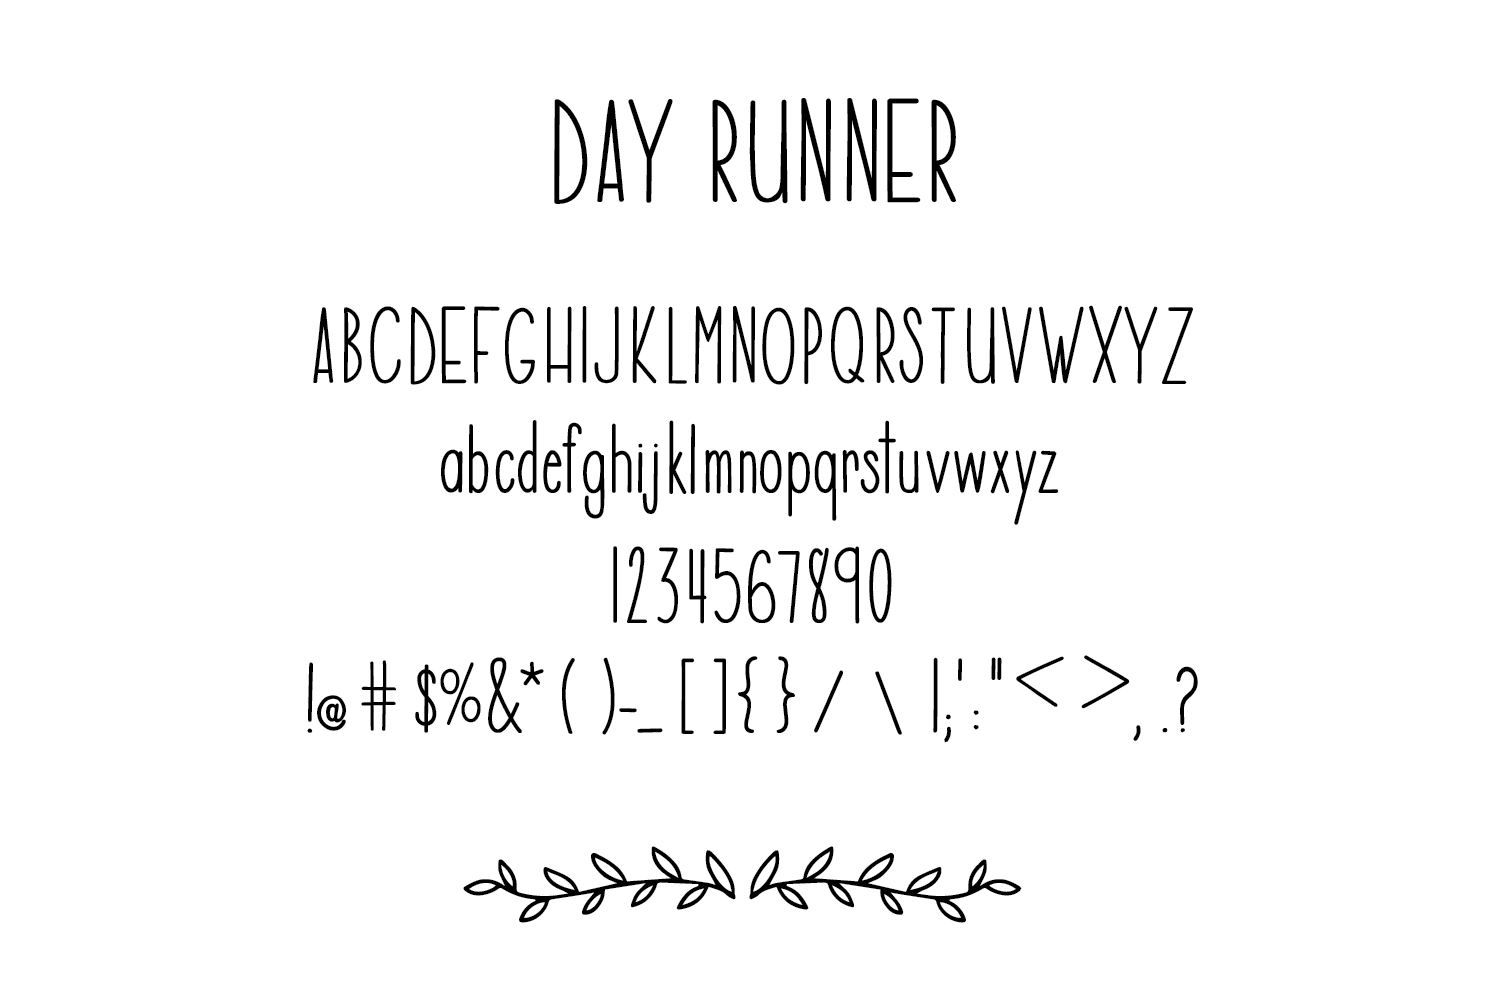 Day Runner Font - a tall, skinny, handwritten font example image 2